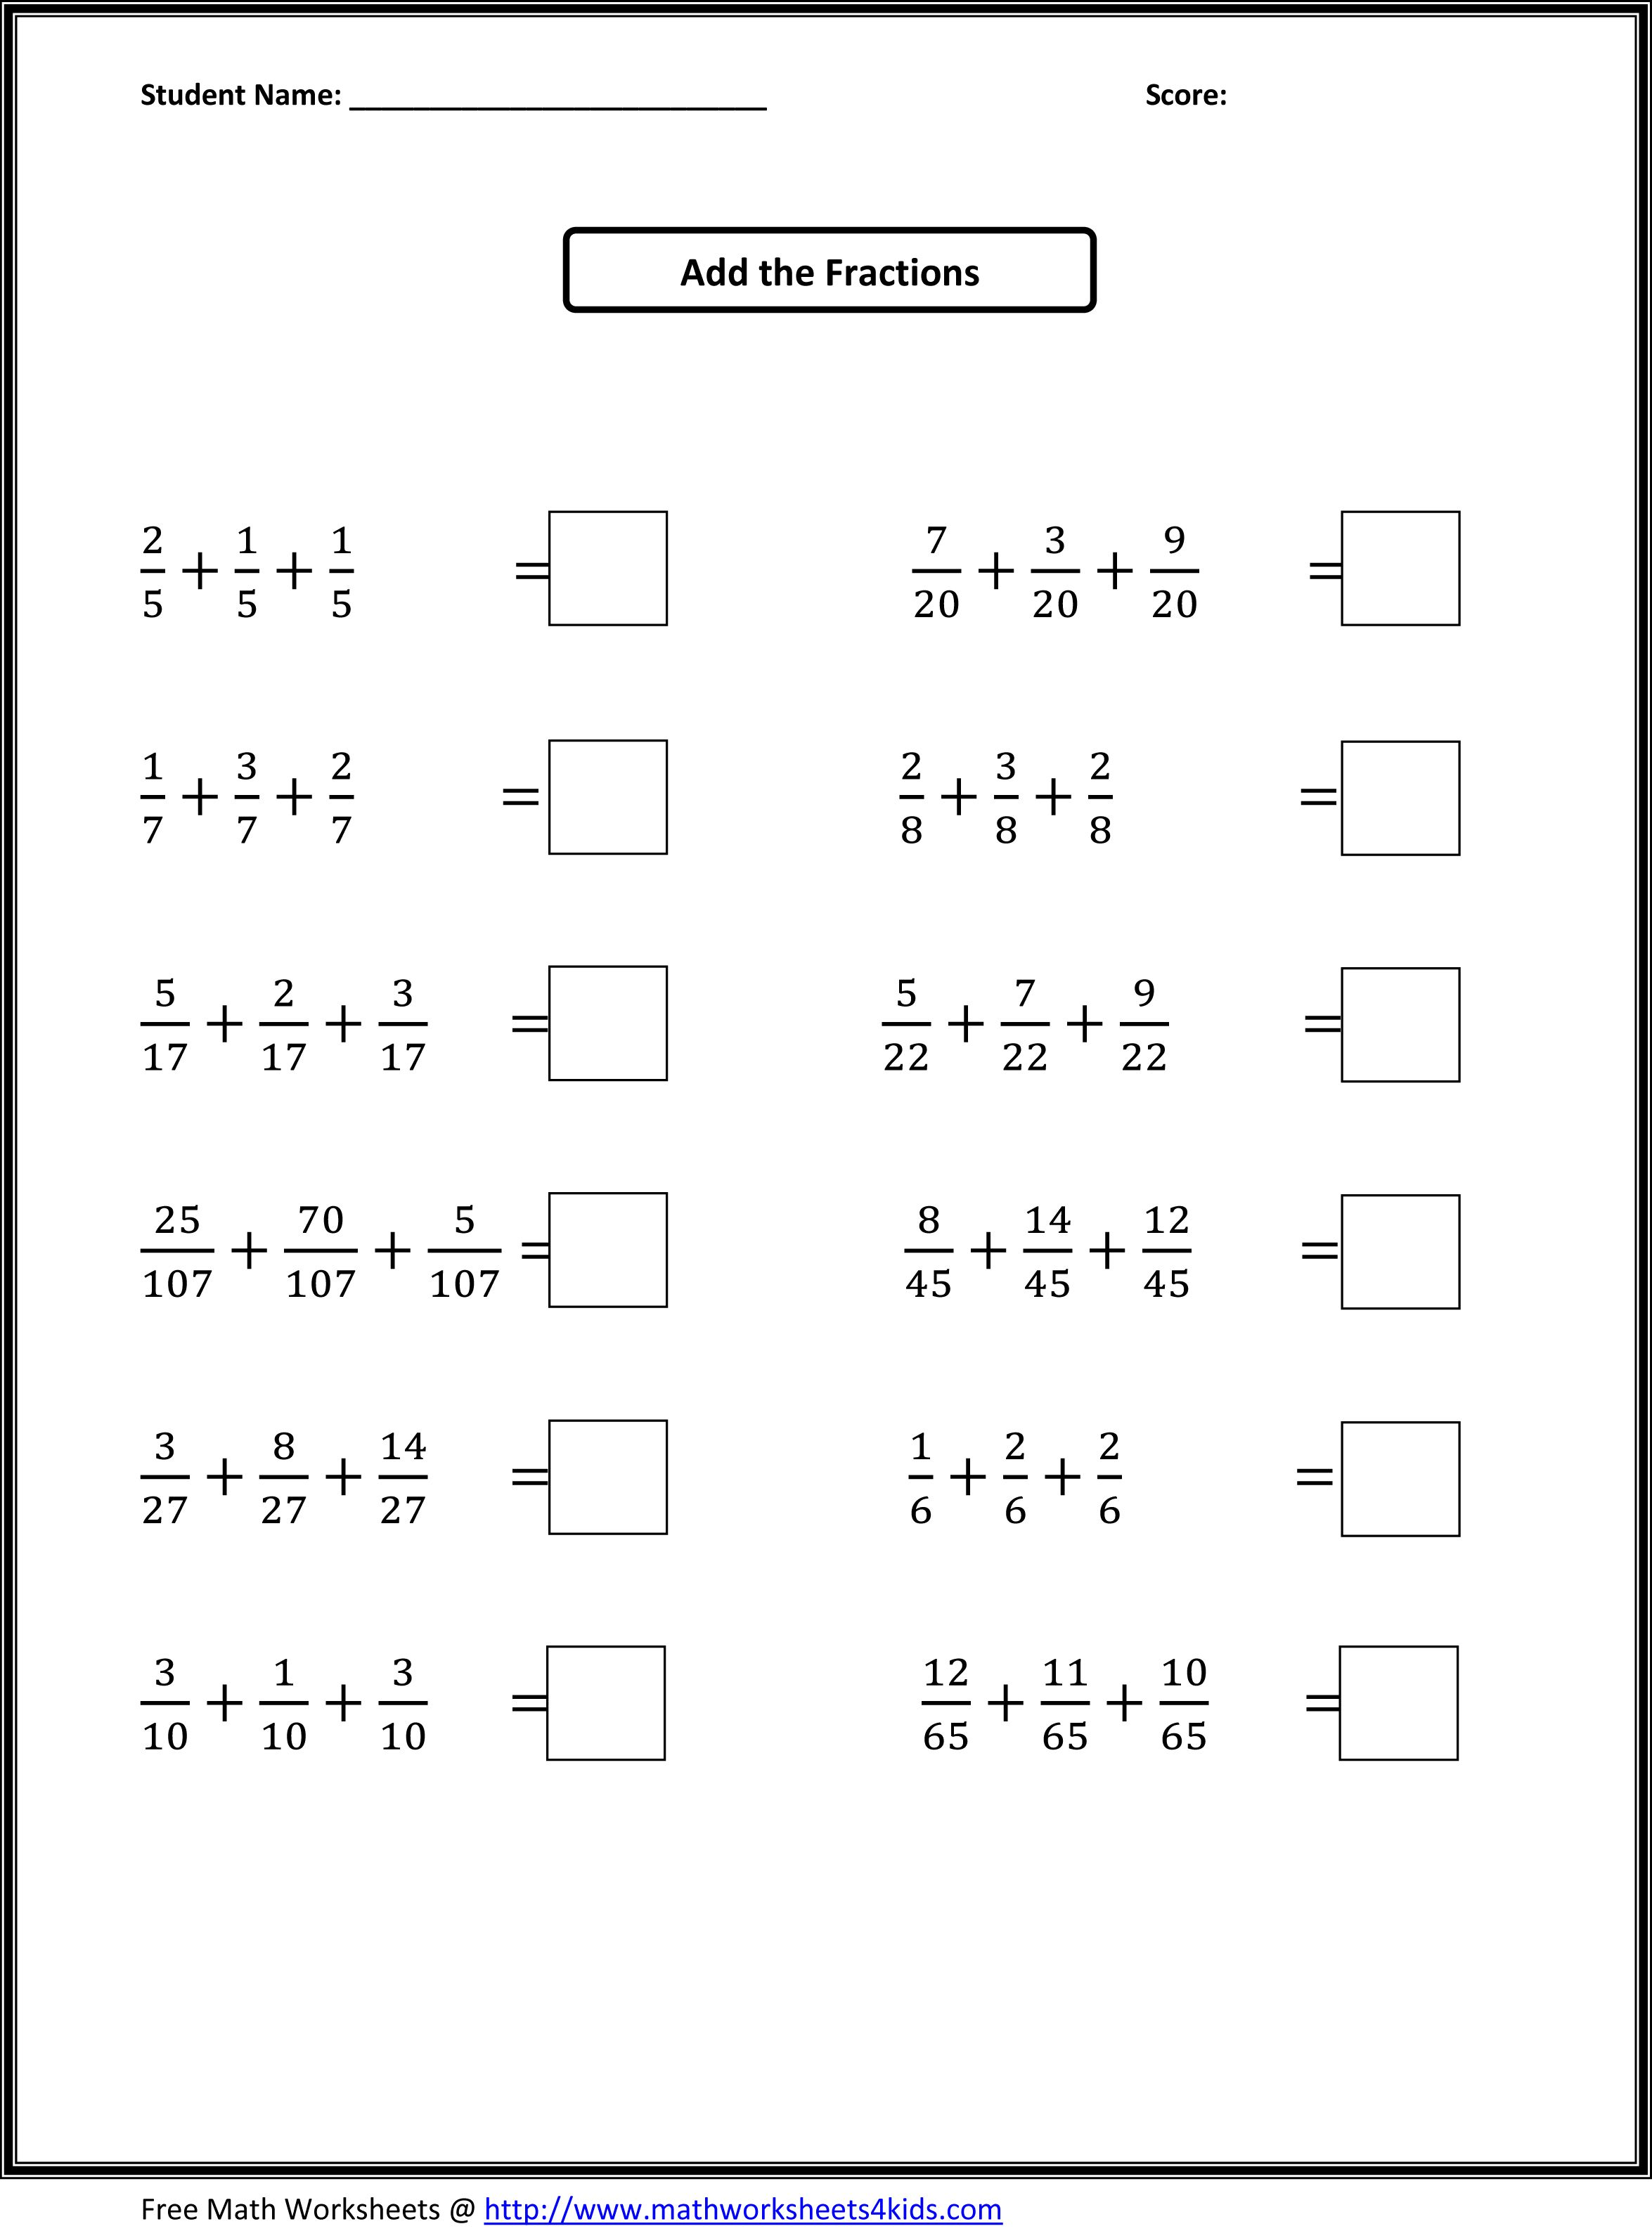 Worksheet Math Worksheets 4th Grade 1000 images about math worksheets on pinterest 4th grade geometry and math